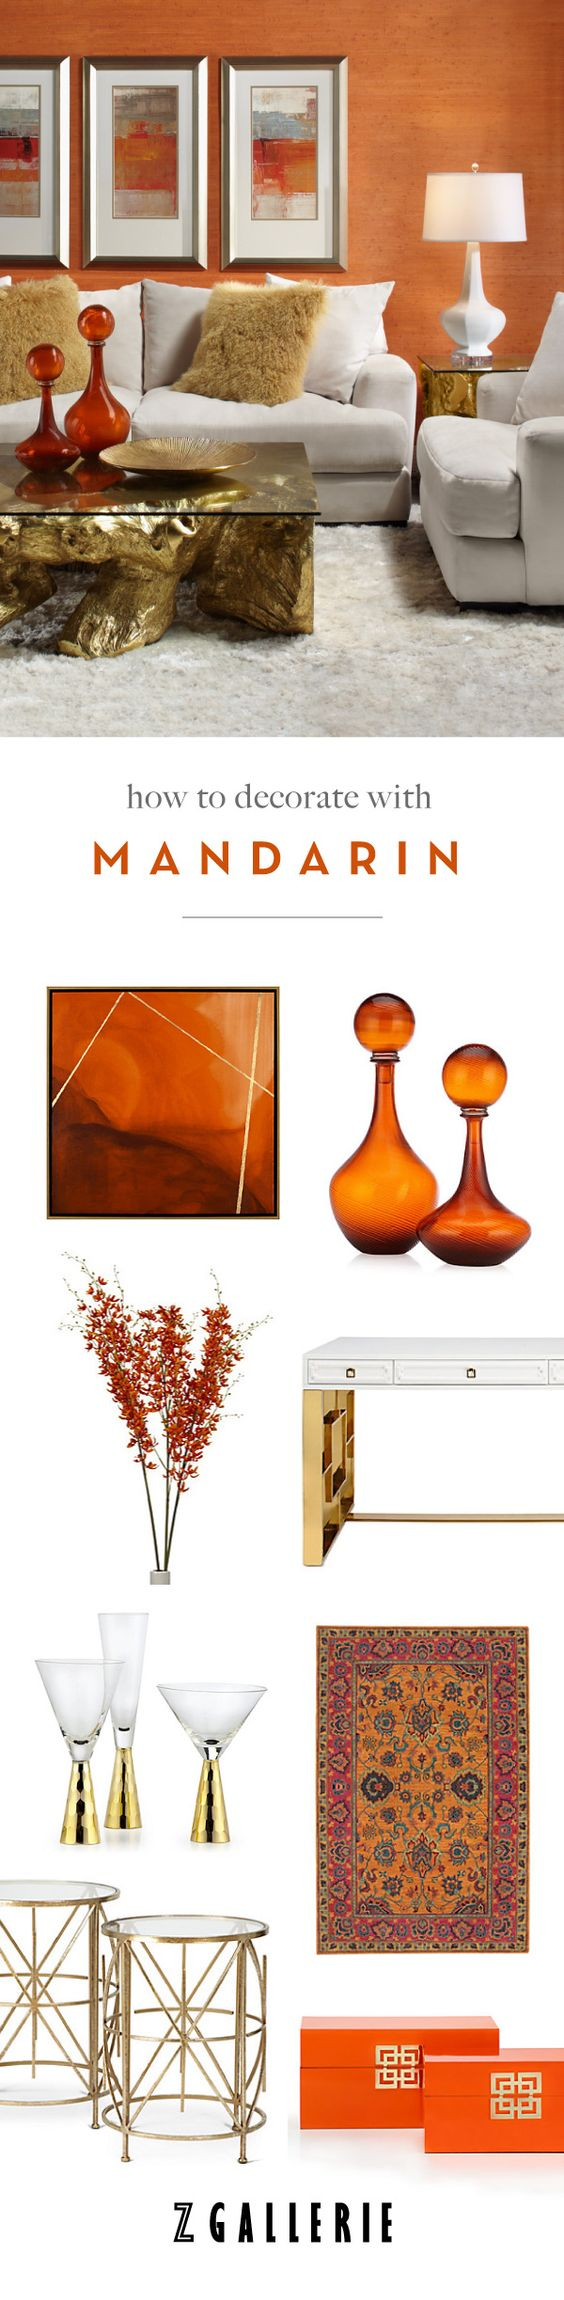 Get easy ideas for infusing mandarin in your space this summer. Explore our Fashionista's Guide to Home Color on zgallerie.com!: